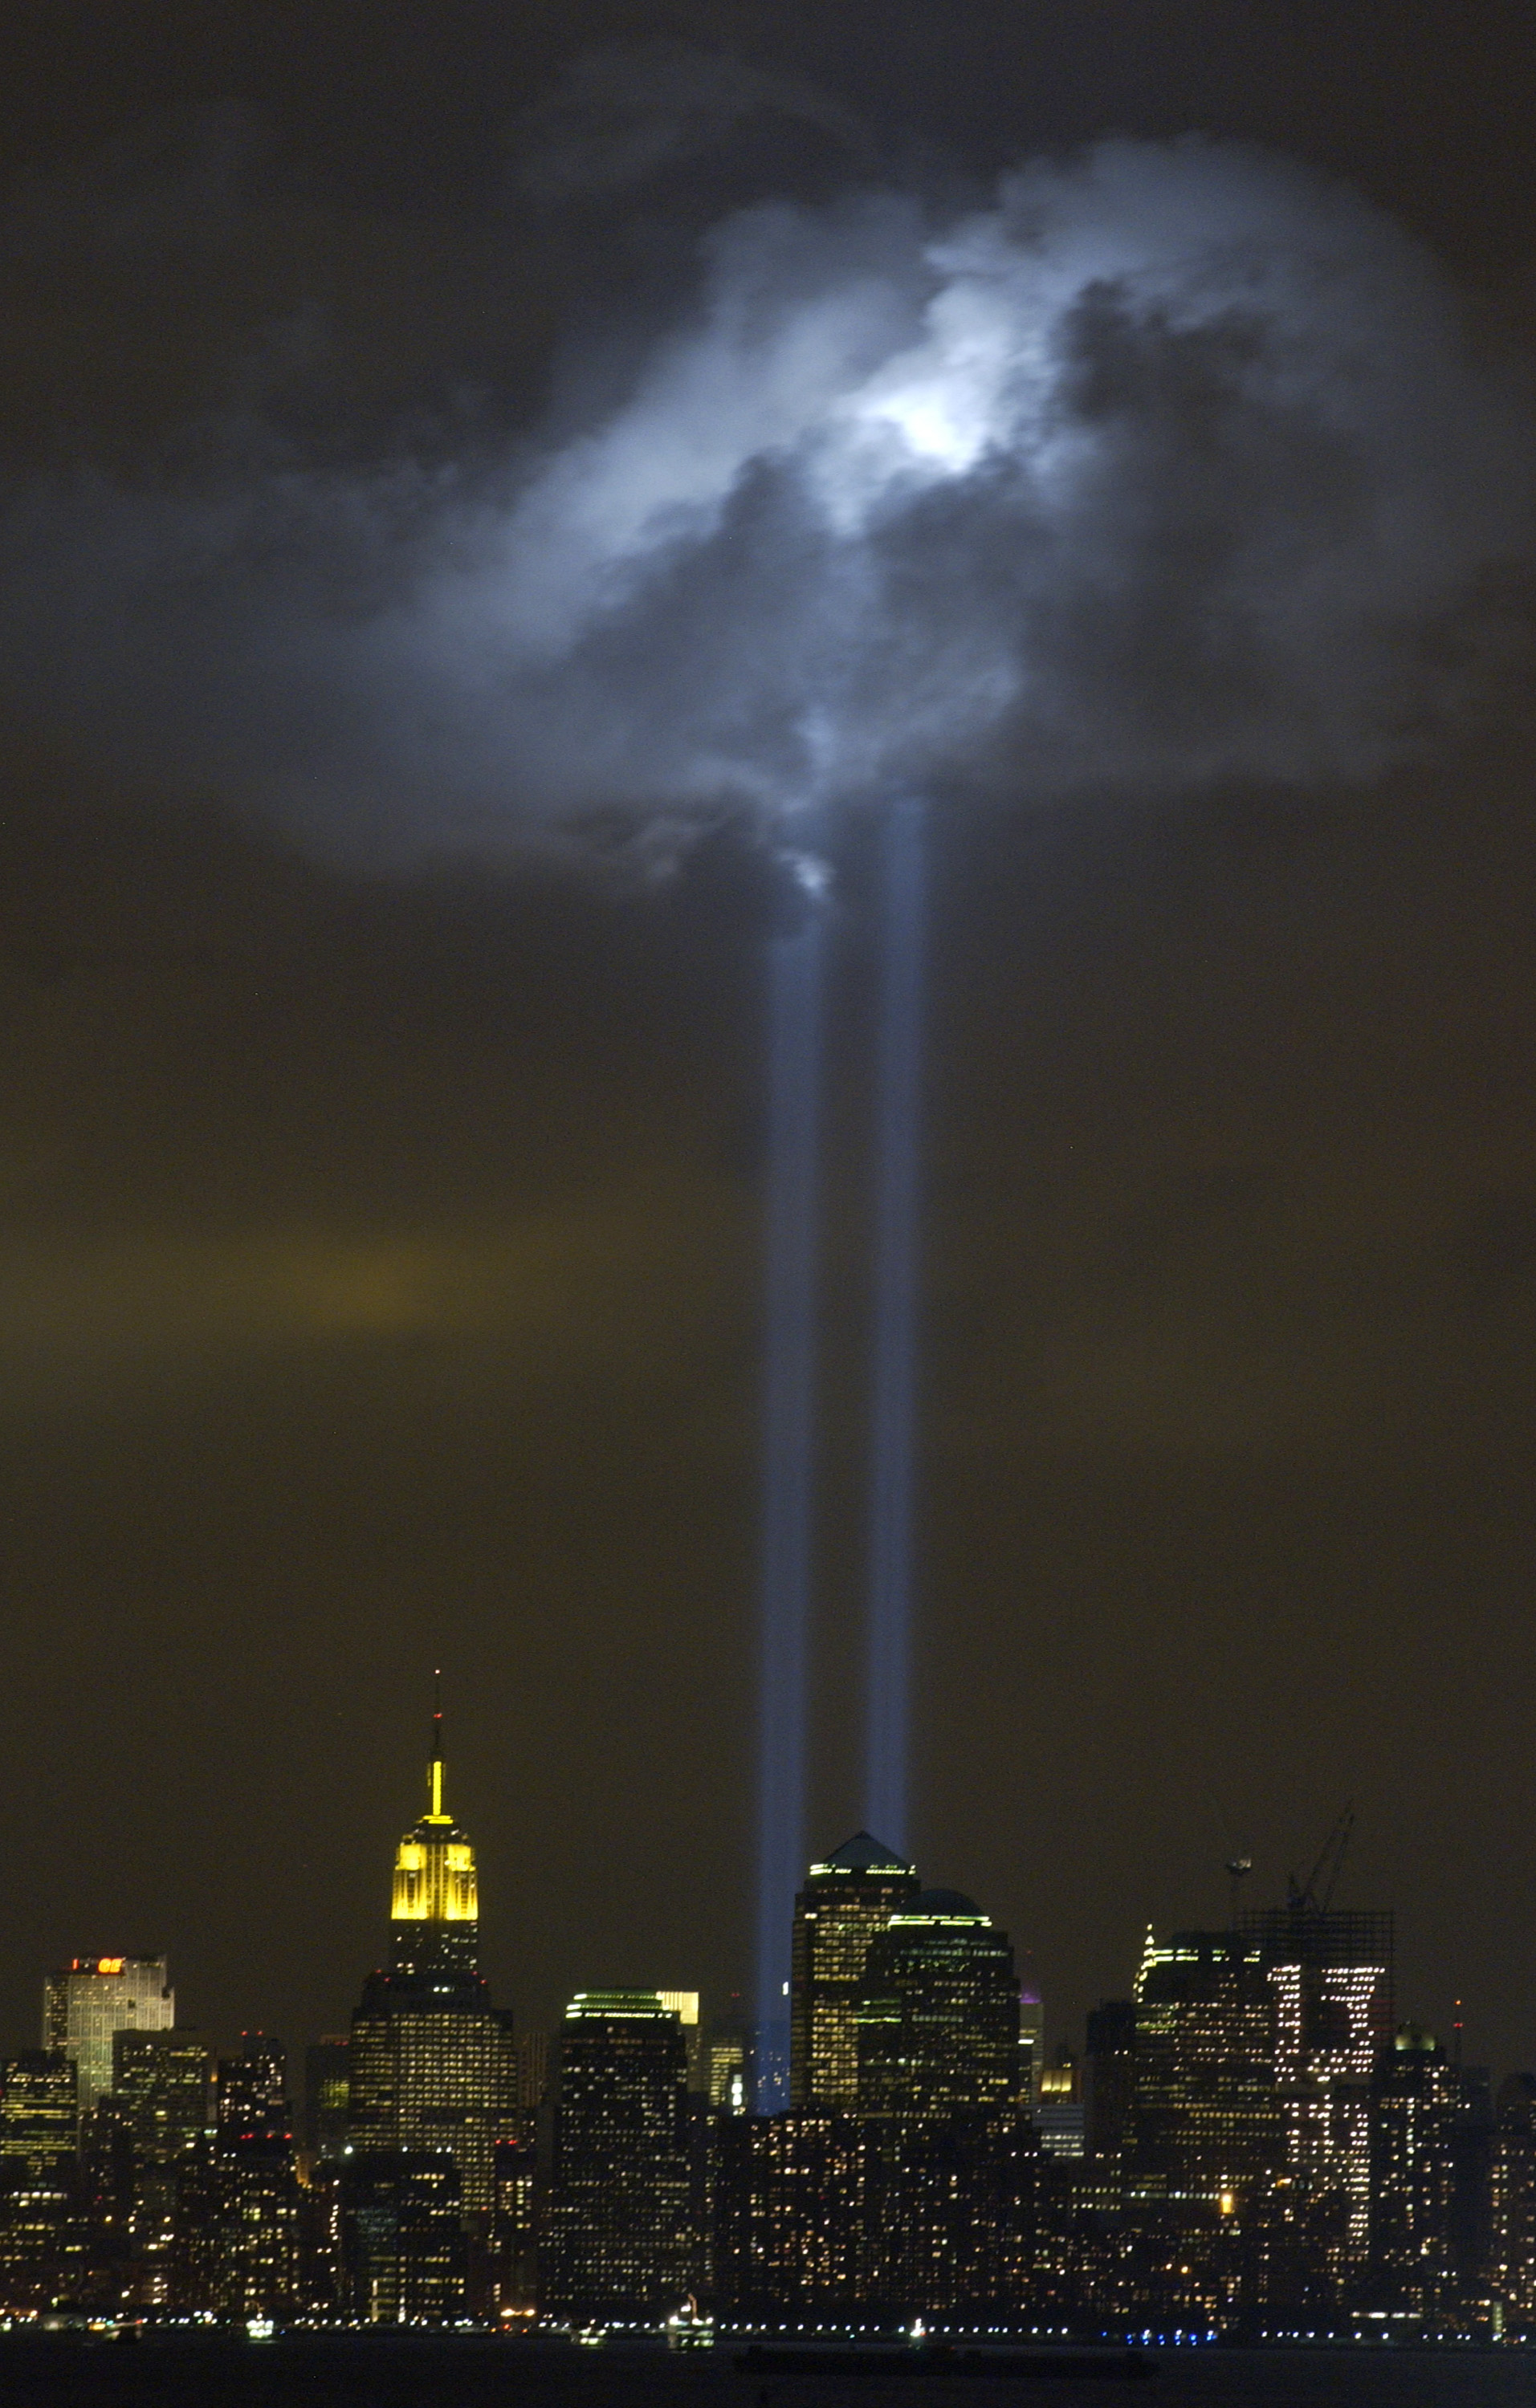 An overview of the terrorist attacks on september 11 2001